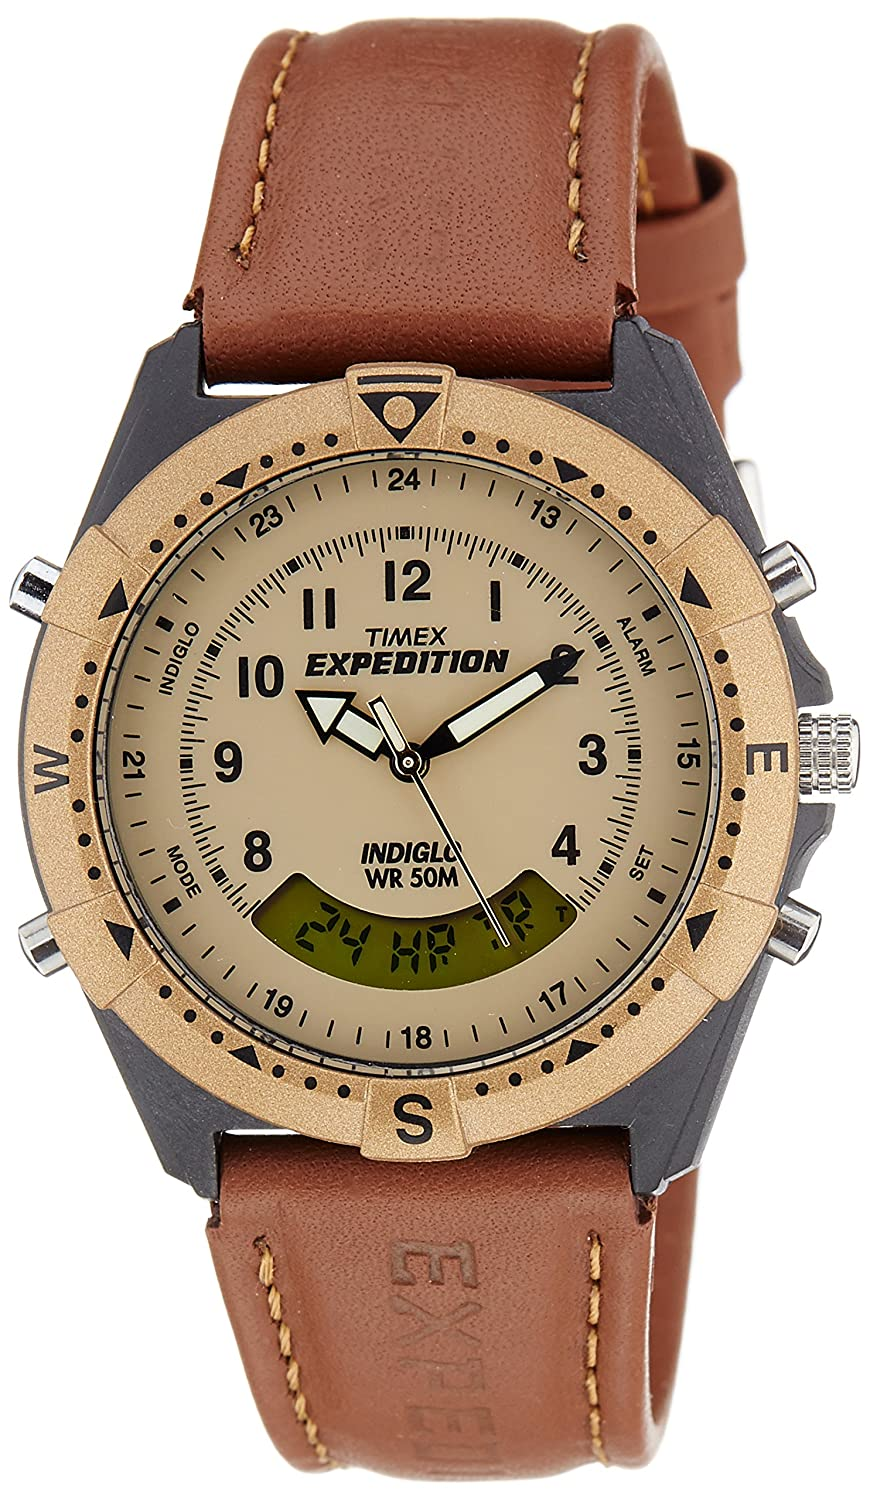 Upto 50% off On Watches Top Brands By Amazon | Timex Expedition Analog-Digital Beige Dial Unisex Watch - MF13 @ Rs.1,949